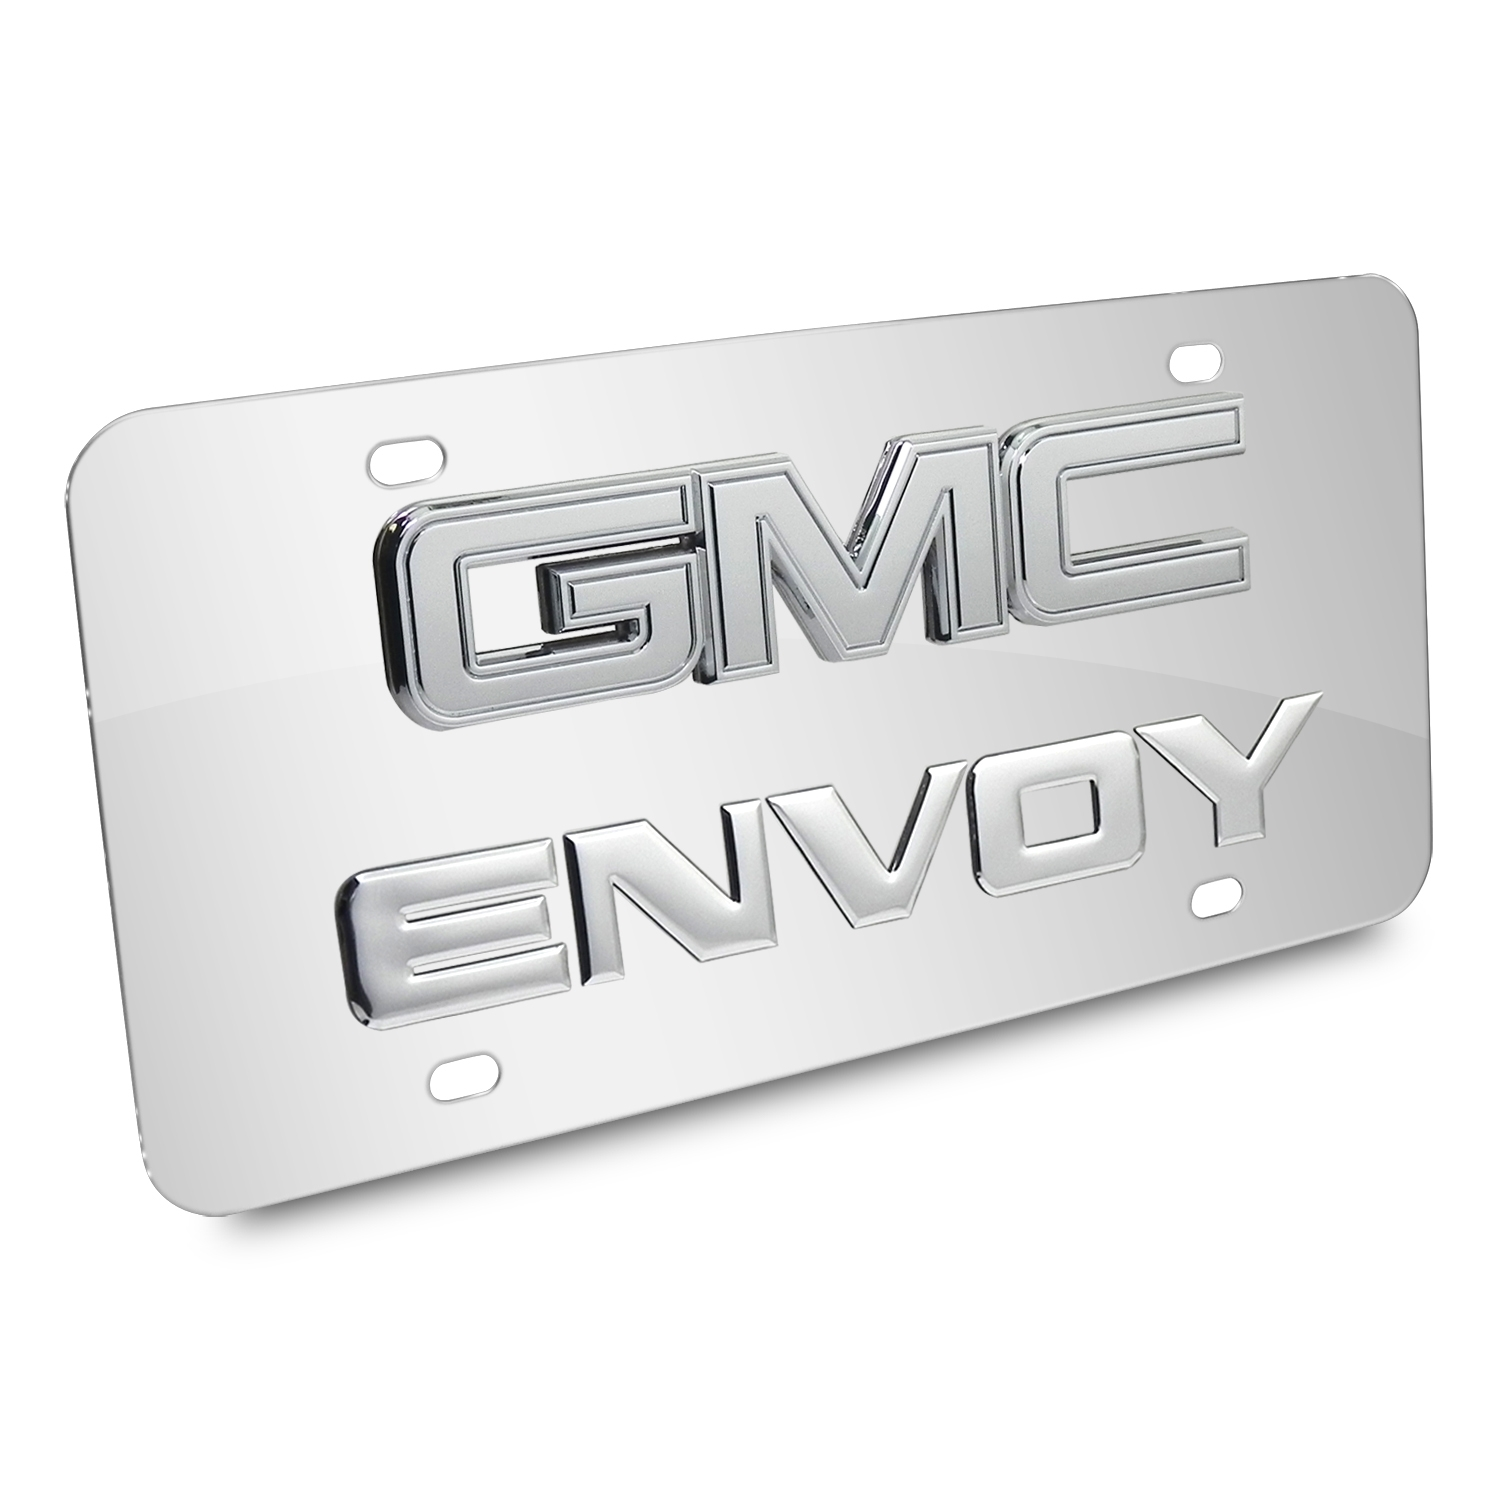 GMC Envoy Double 3d Logo Chrome Stainless Steel License Plate